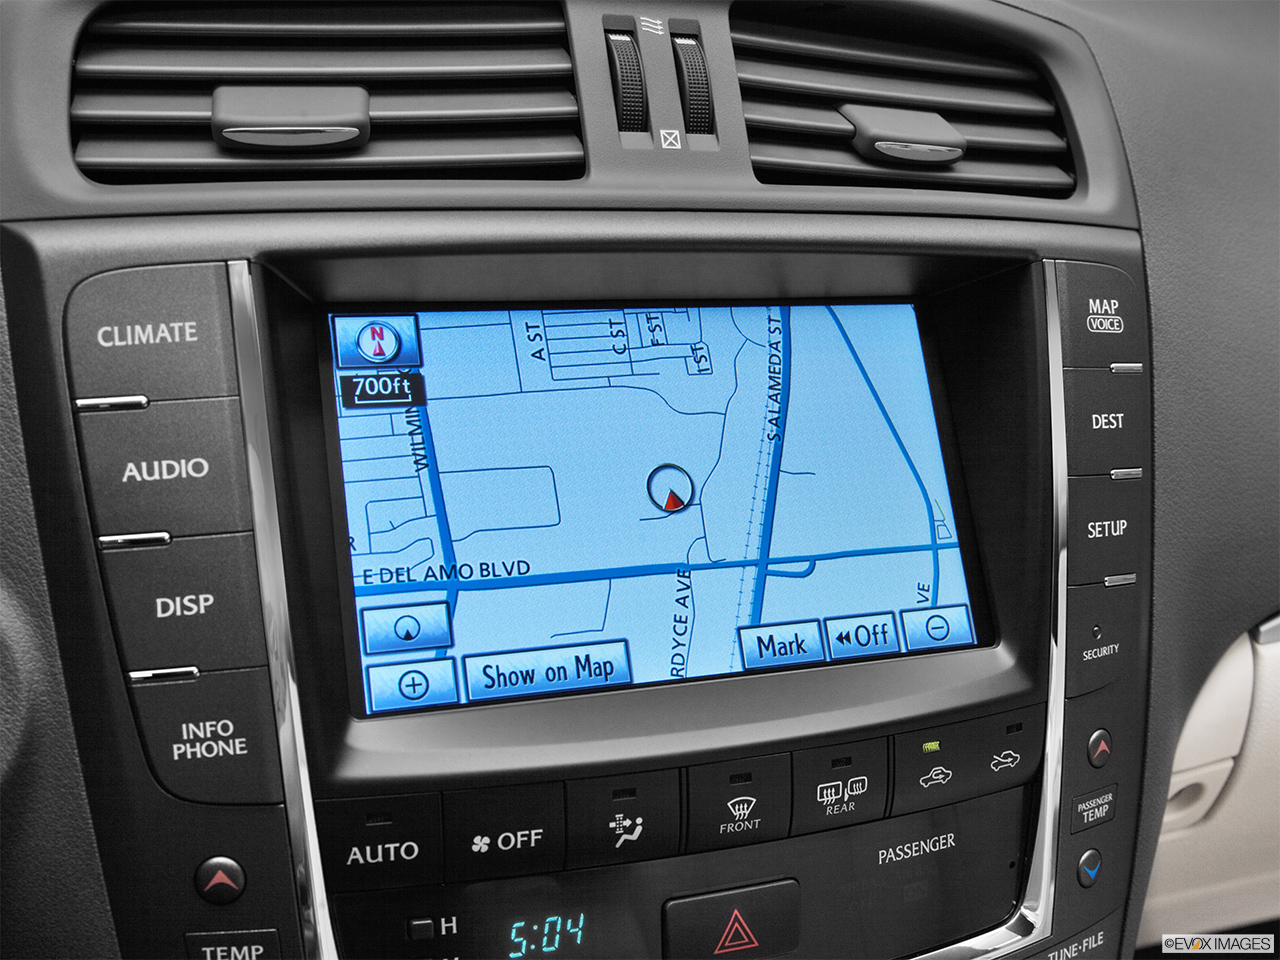 2012 Lexus IS 250 IS250 Driver position view of navigation system.